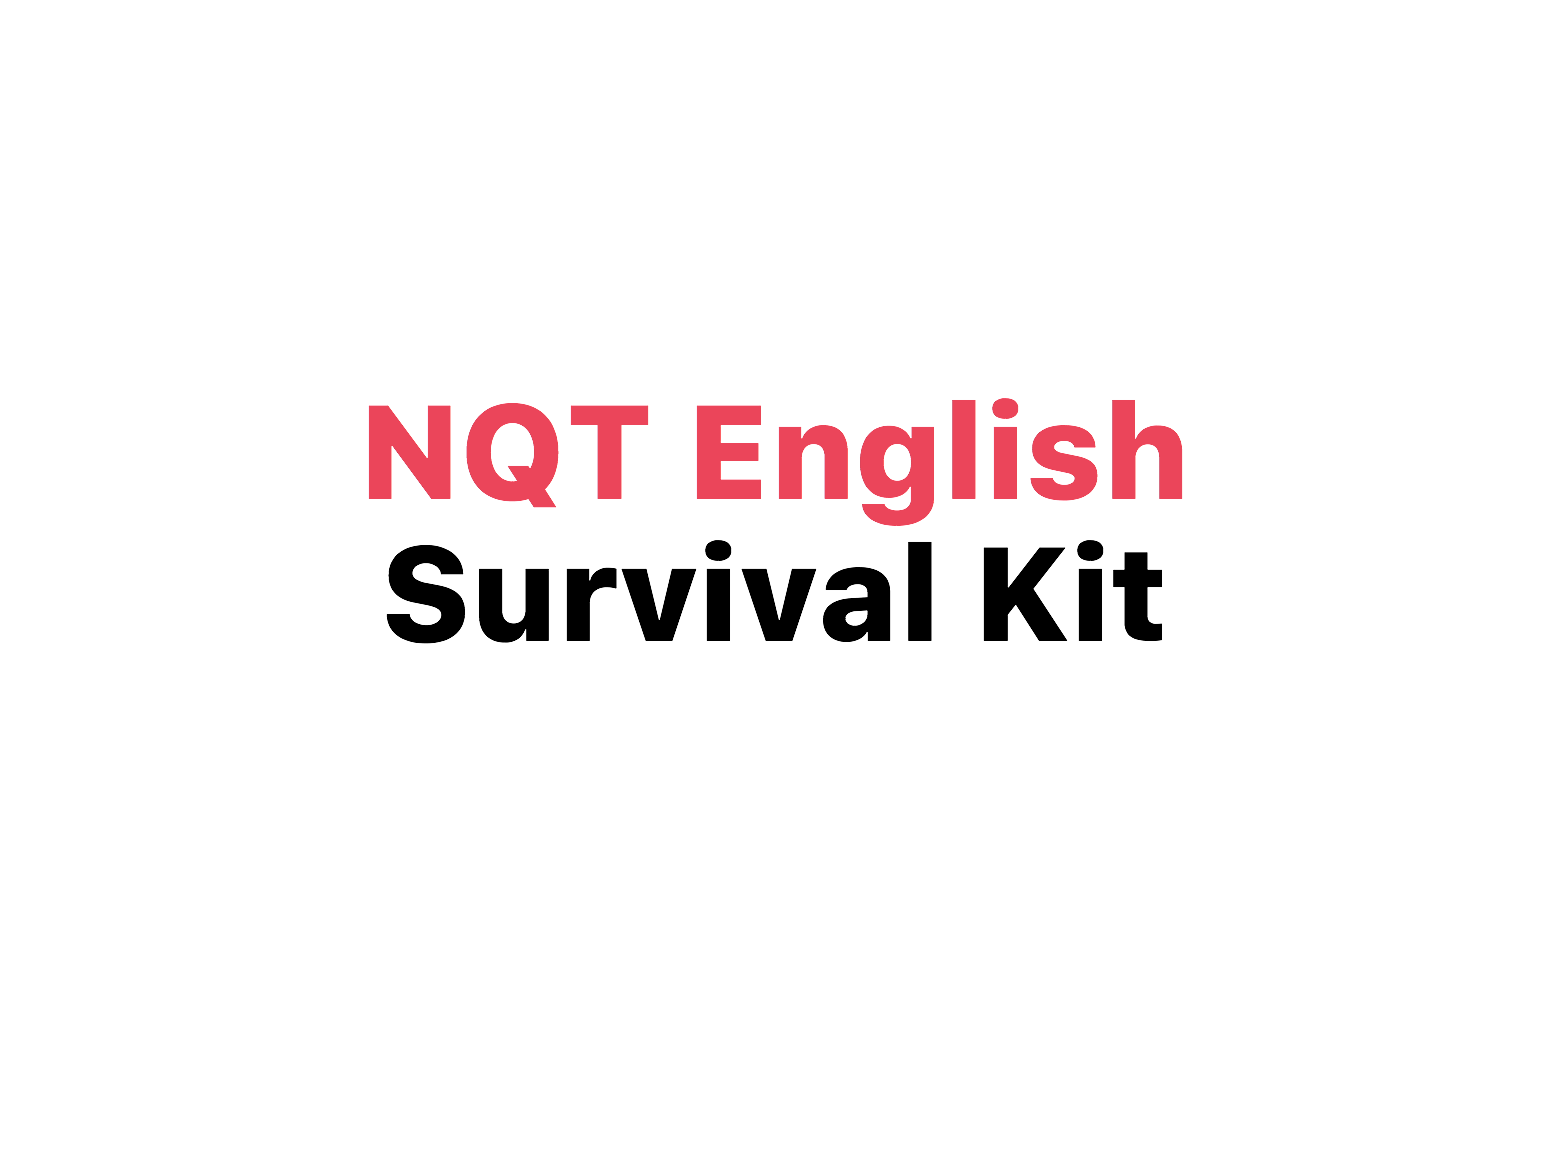 NQT English Survival Kit